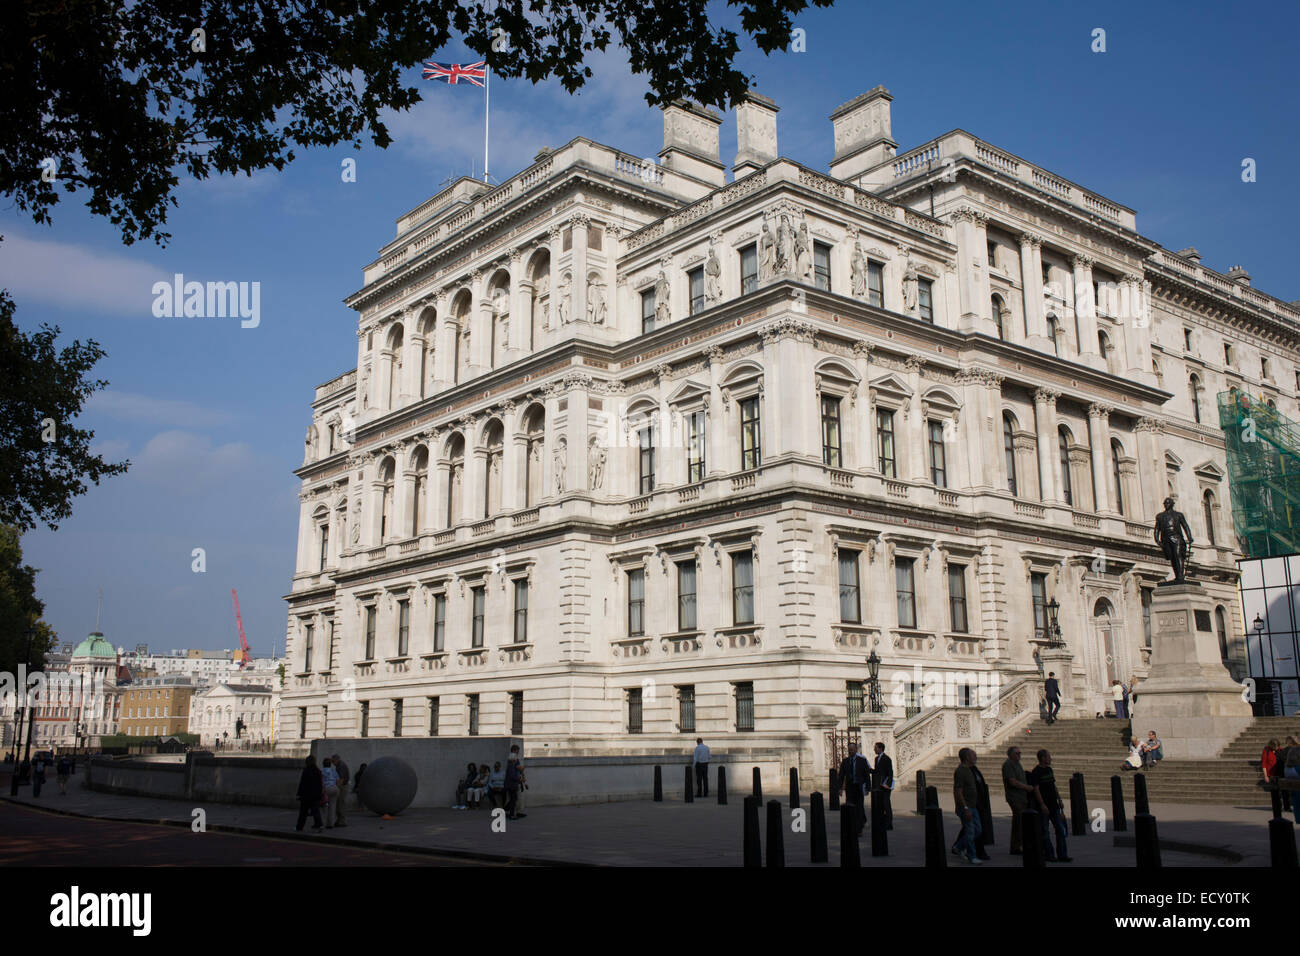 The italianate style the foreign and commonwealth office main stock photo royalty free image - British foreign commonwealth office ...